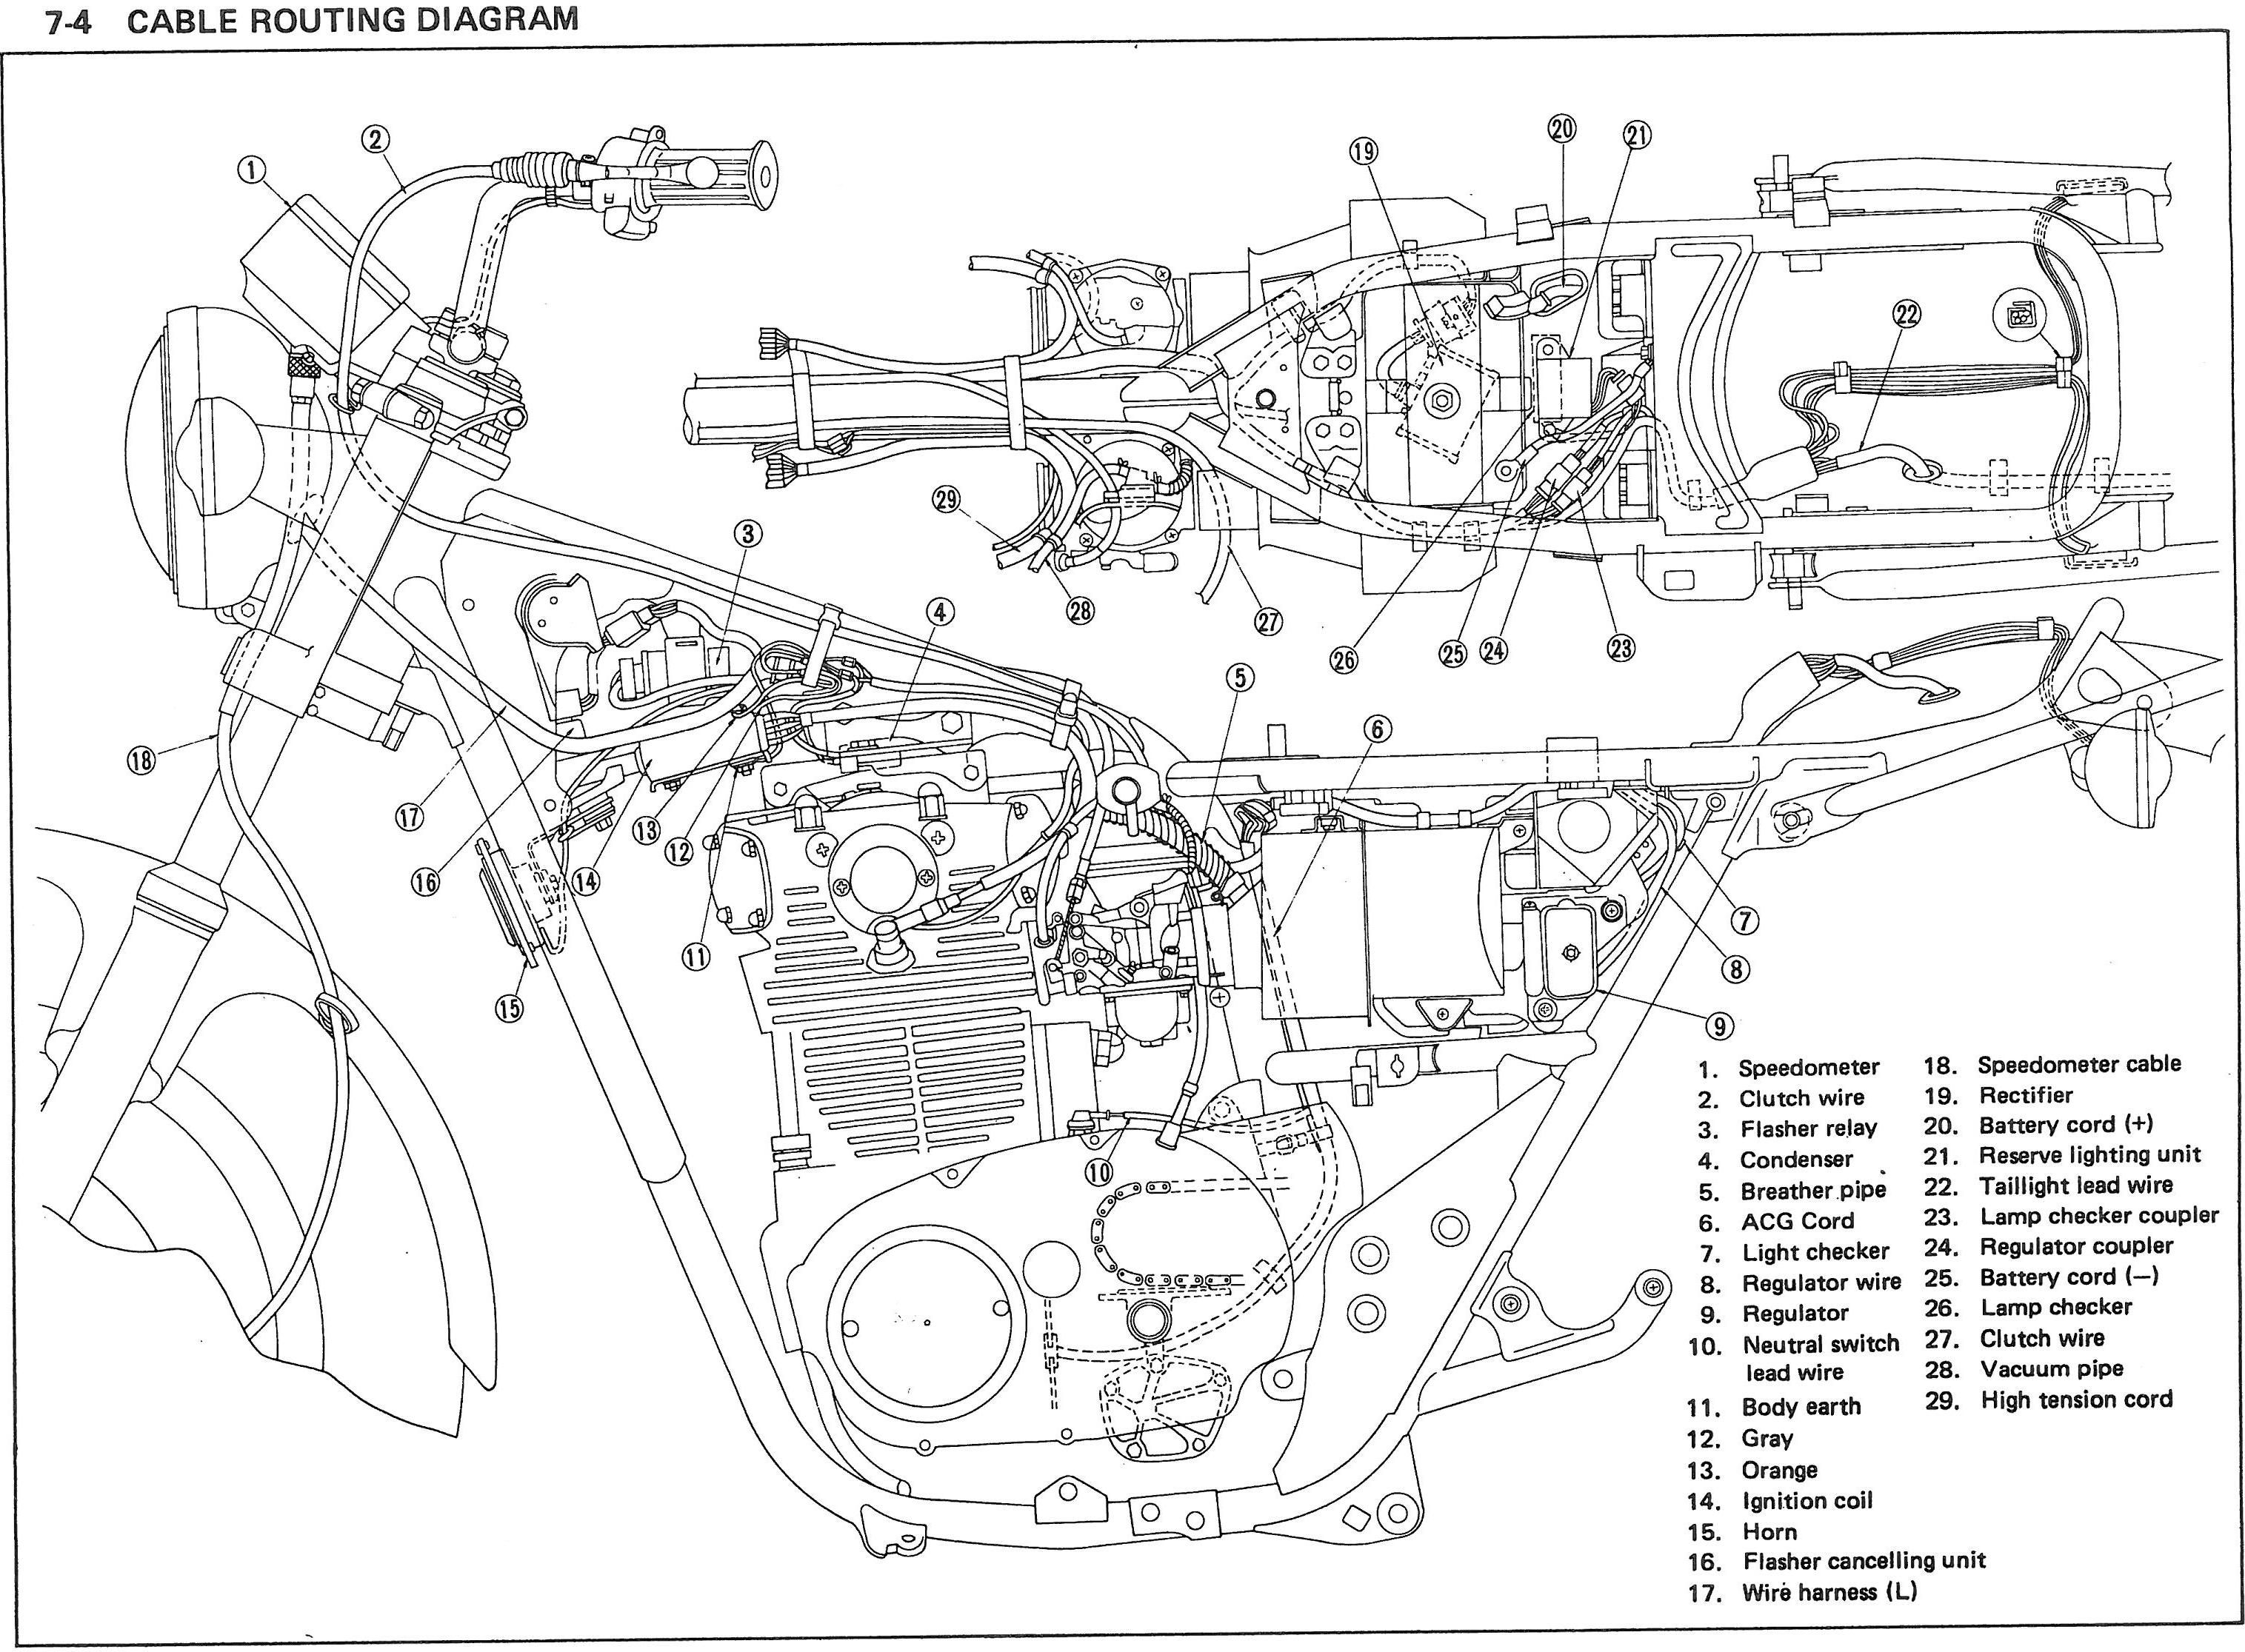 6a8055d2be1cf75e9abdb39ca388258e yamaha xs400 wiring diagram yamaha rd200 wiring diagram \u2022 free 1980 yamaha xs400 wiring diagram at n-0.co